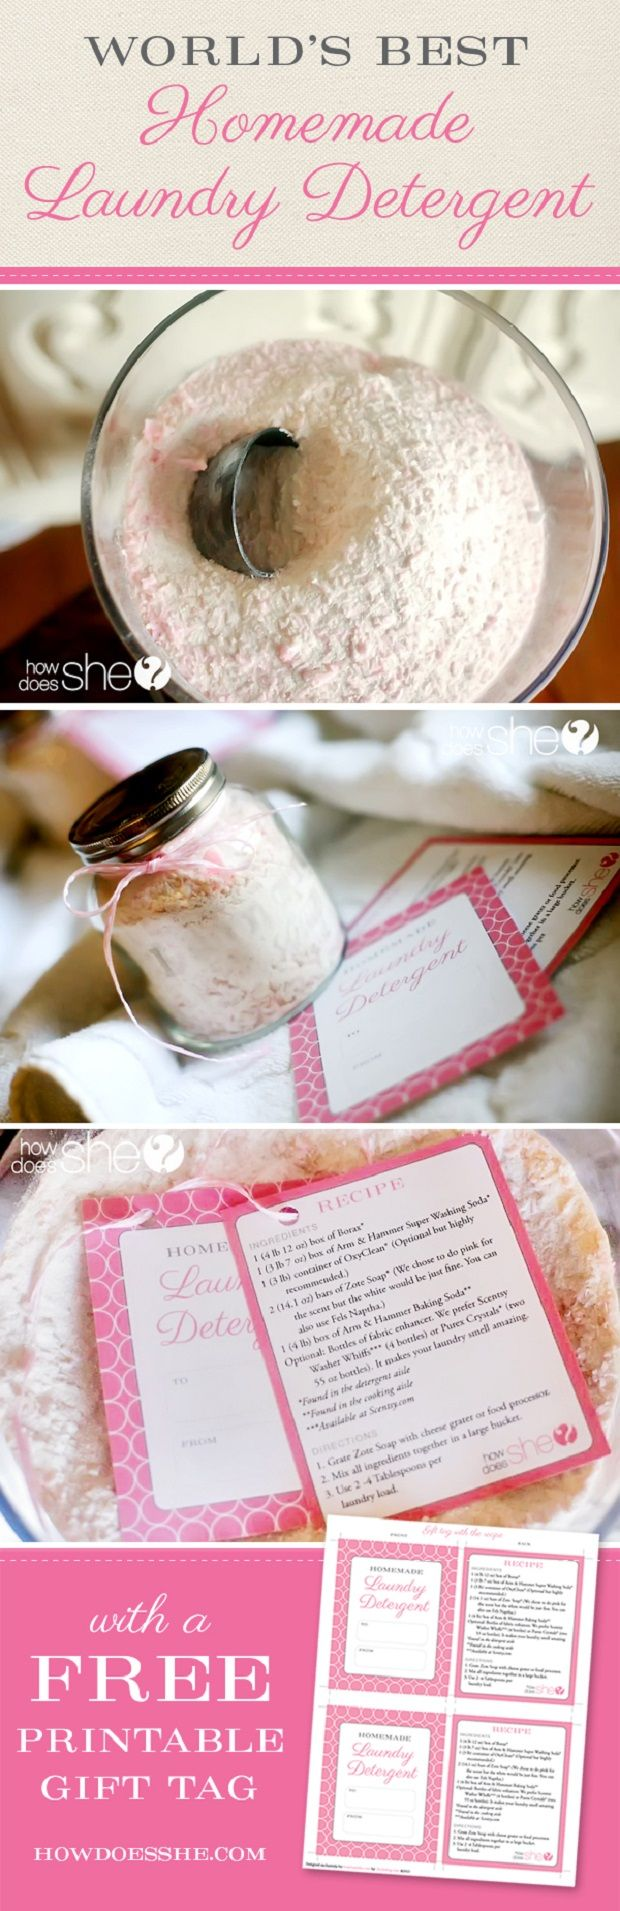 Making Your Own Laundry Detergent: 25 Recipes , Blissful 55′s Homemade Laundry Detergent